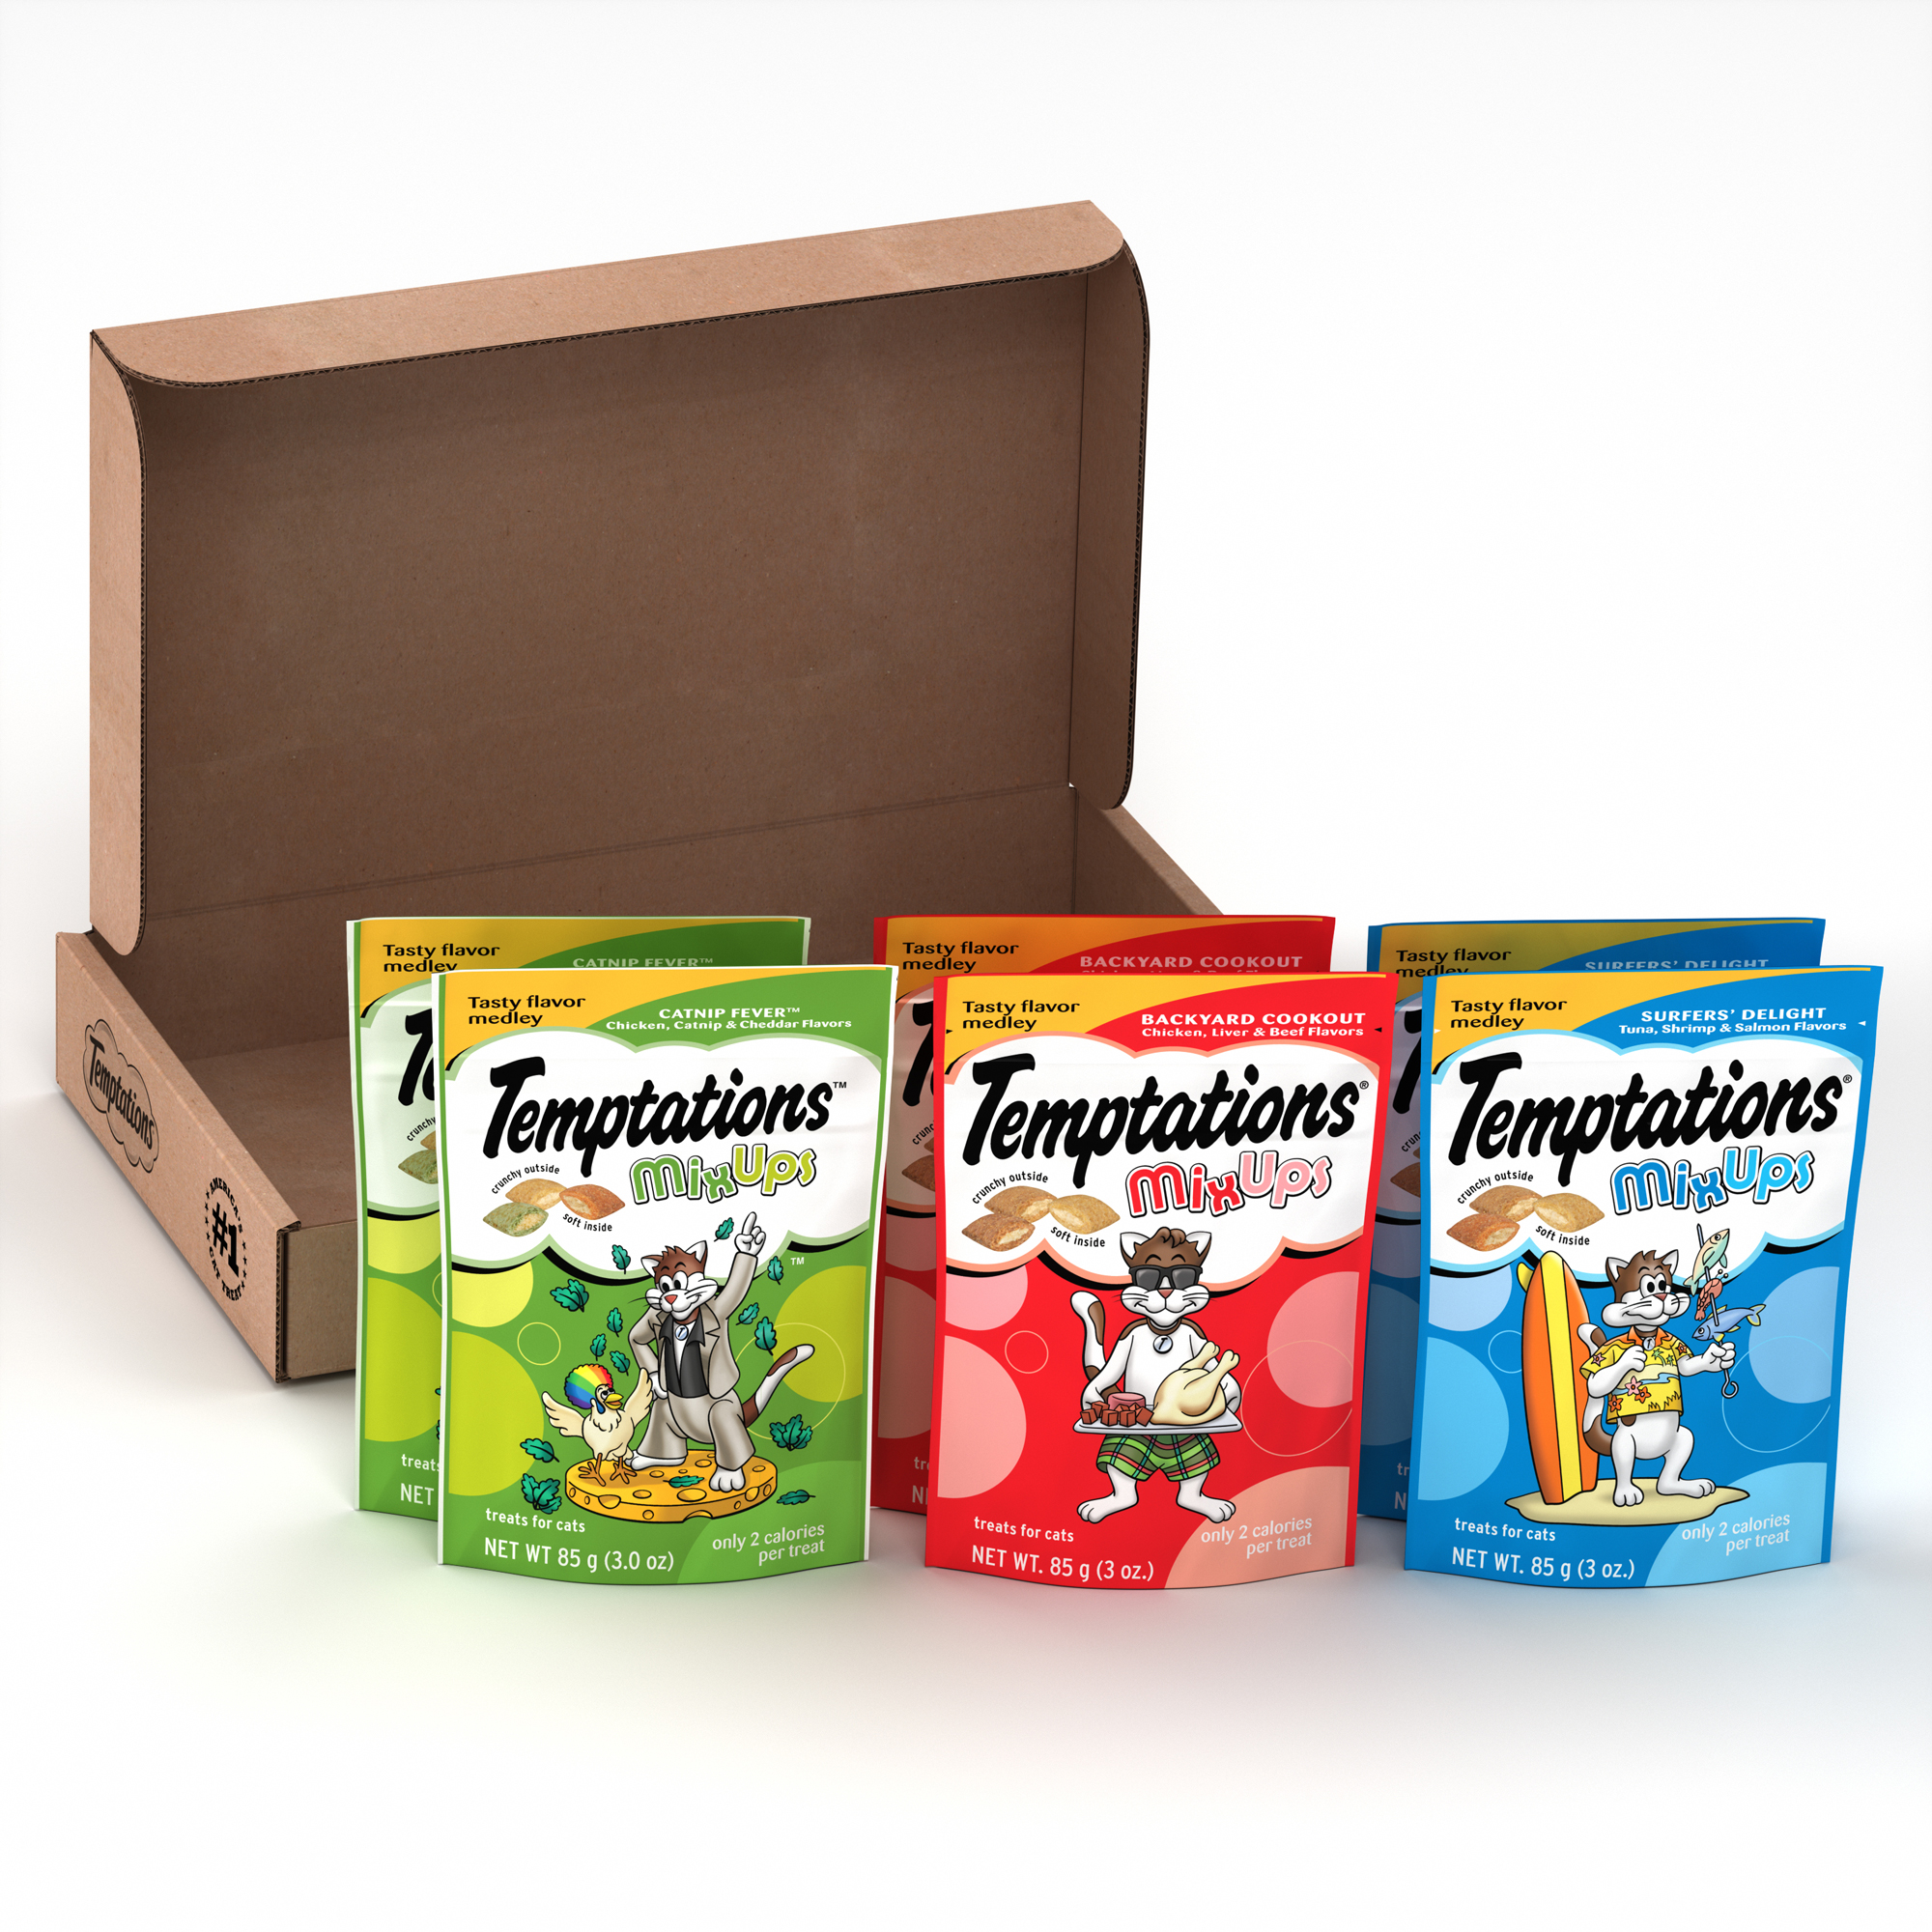 TEMPTATIONS MixUps Cat Treats Variety Pack in Backyard Cookout, Surfer's Delight, and Catnip Fever Flavors... by Mars Petcare